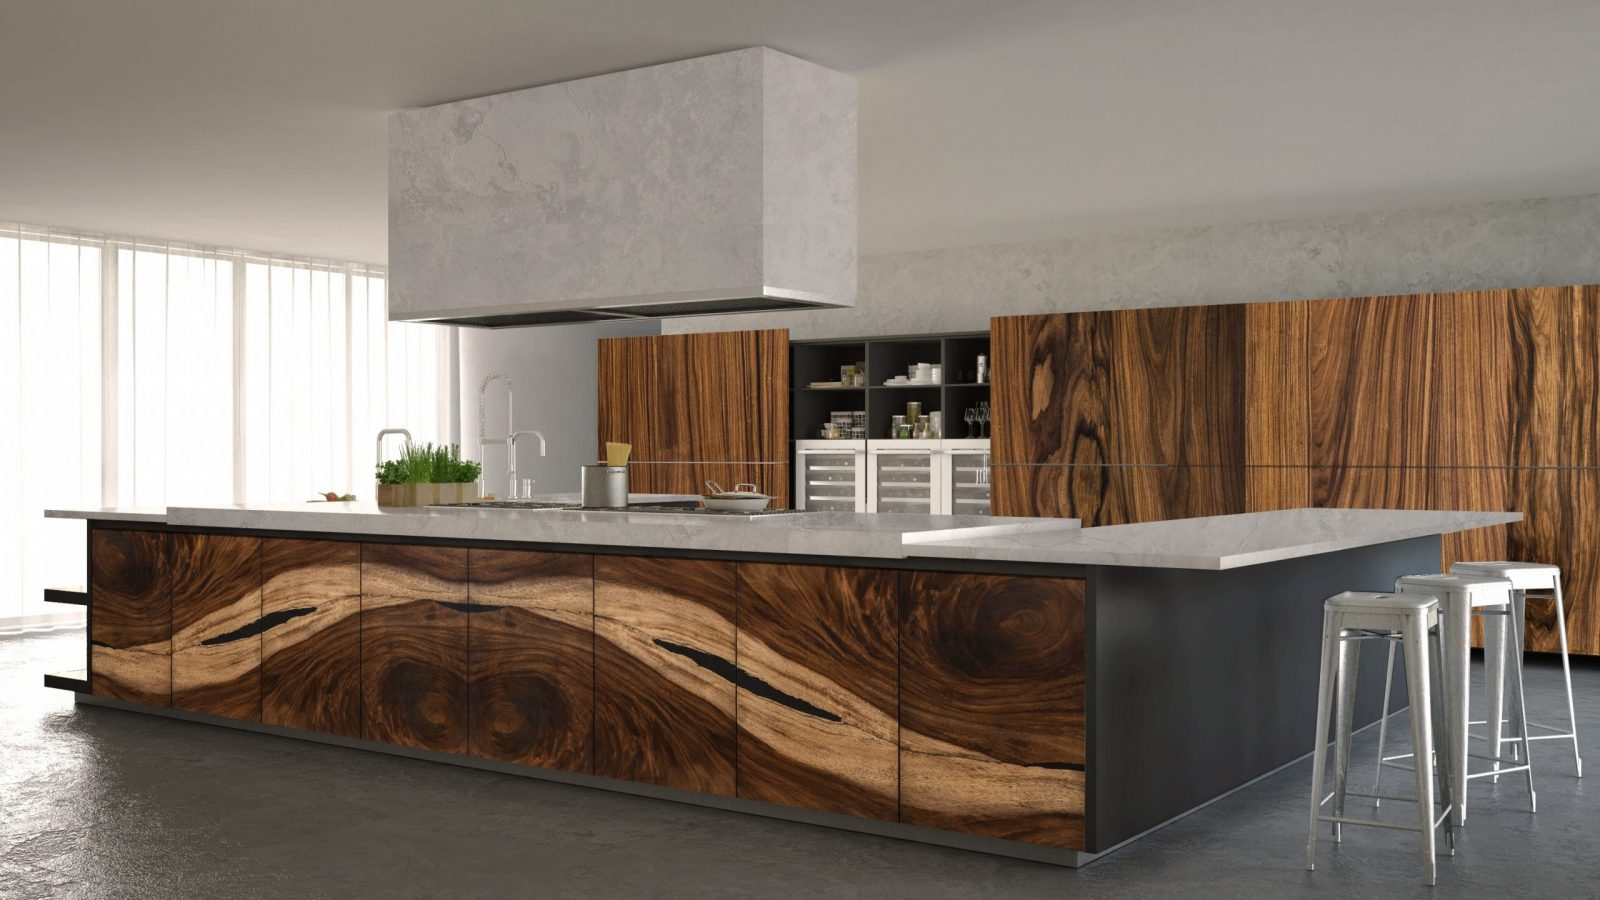 Home remodeling company in scottsdale